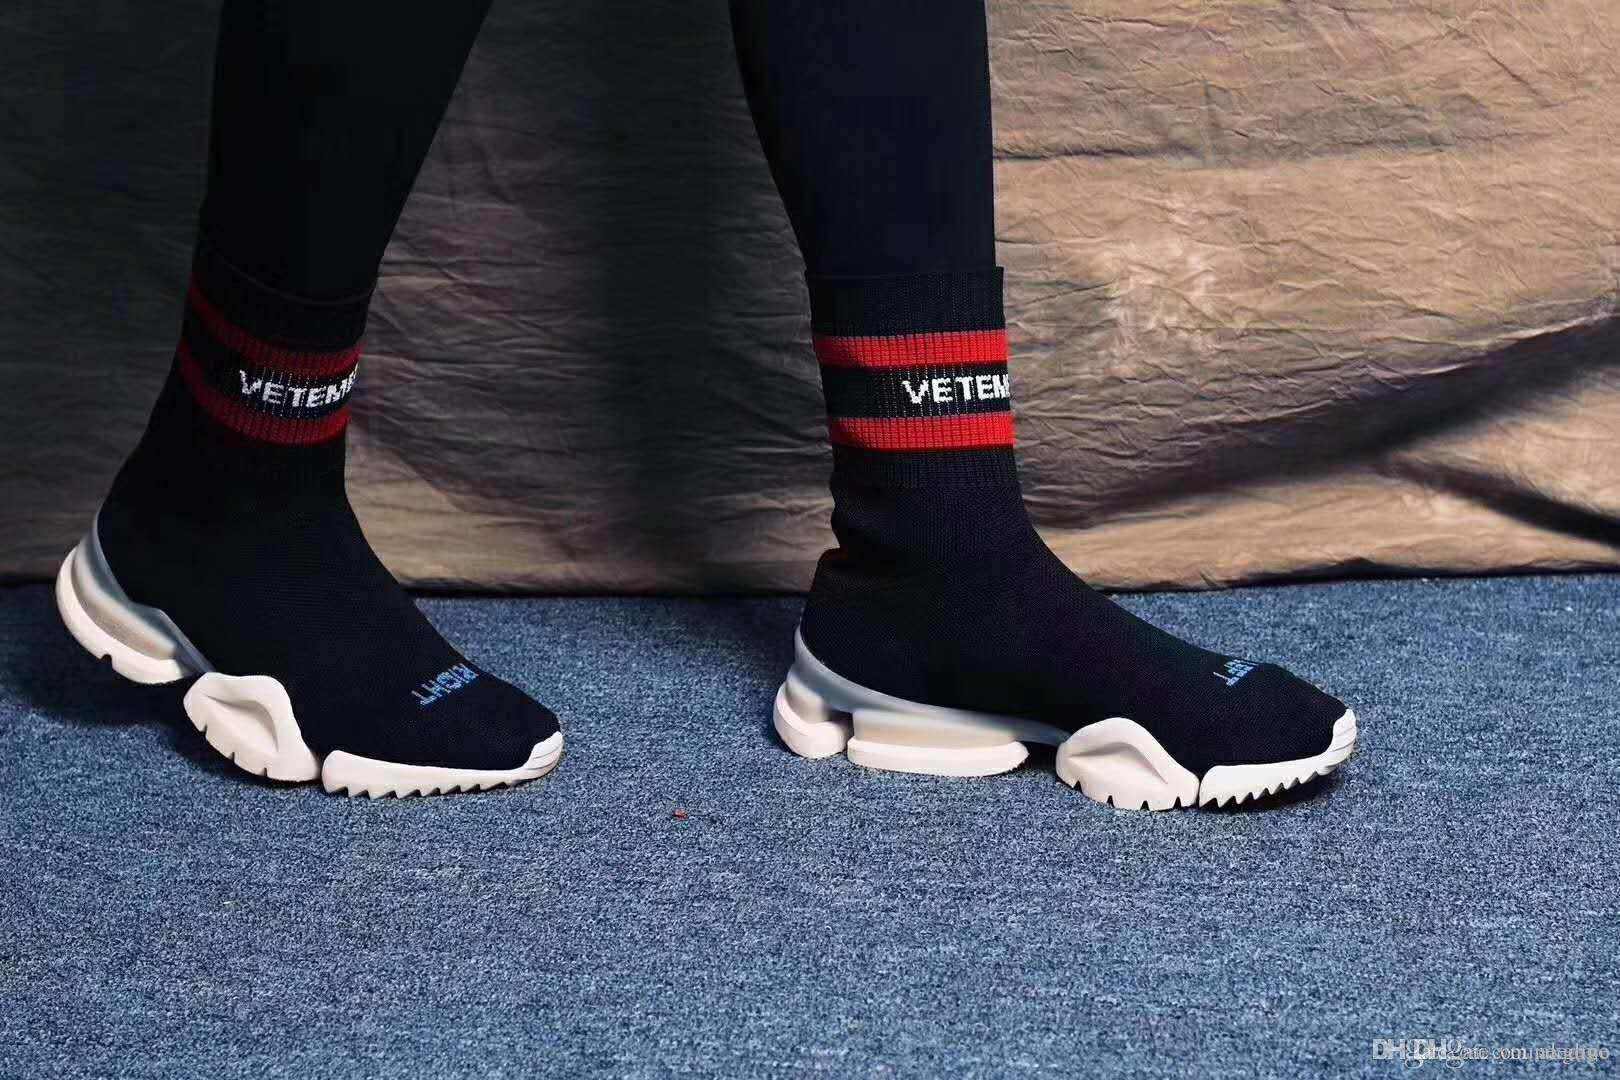 abf95edb5b537 VETEMENTS SS CREW UNISES Sock Trainer Dropping RUNNING Shoes CN3307 Black  Red Socks Shoes Luxury Brand Casual Shoes Brown Boots Winter Boots For  Women From ...